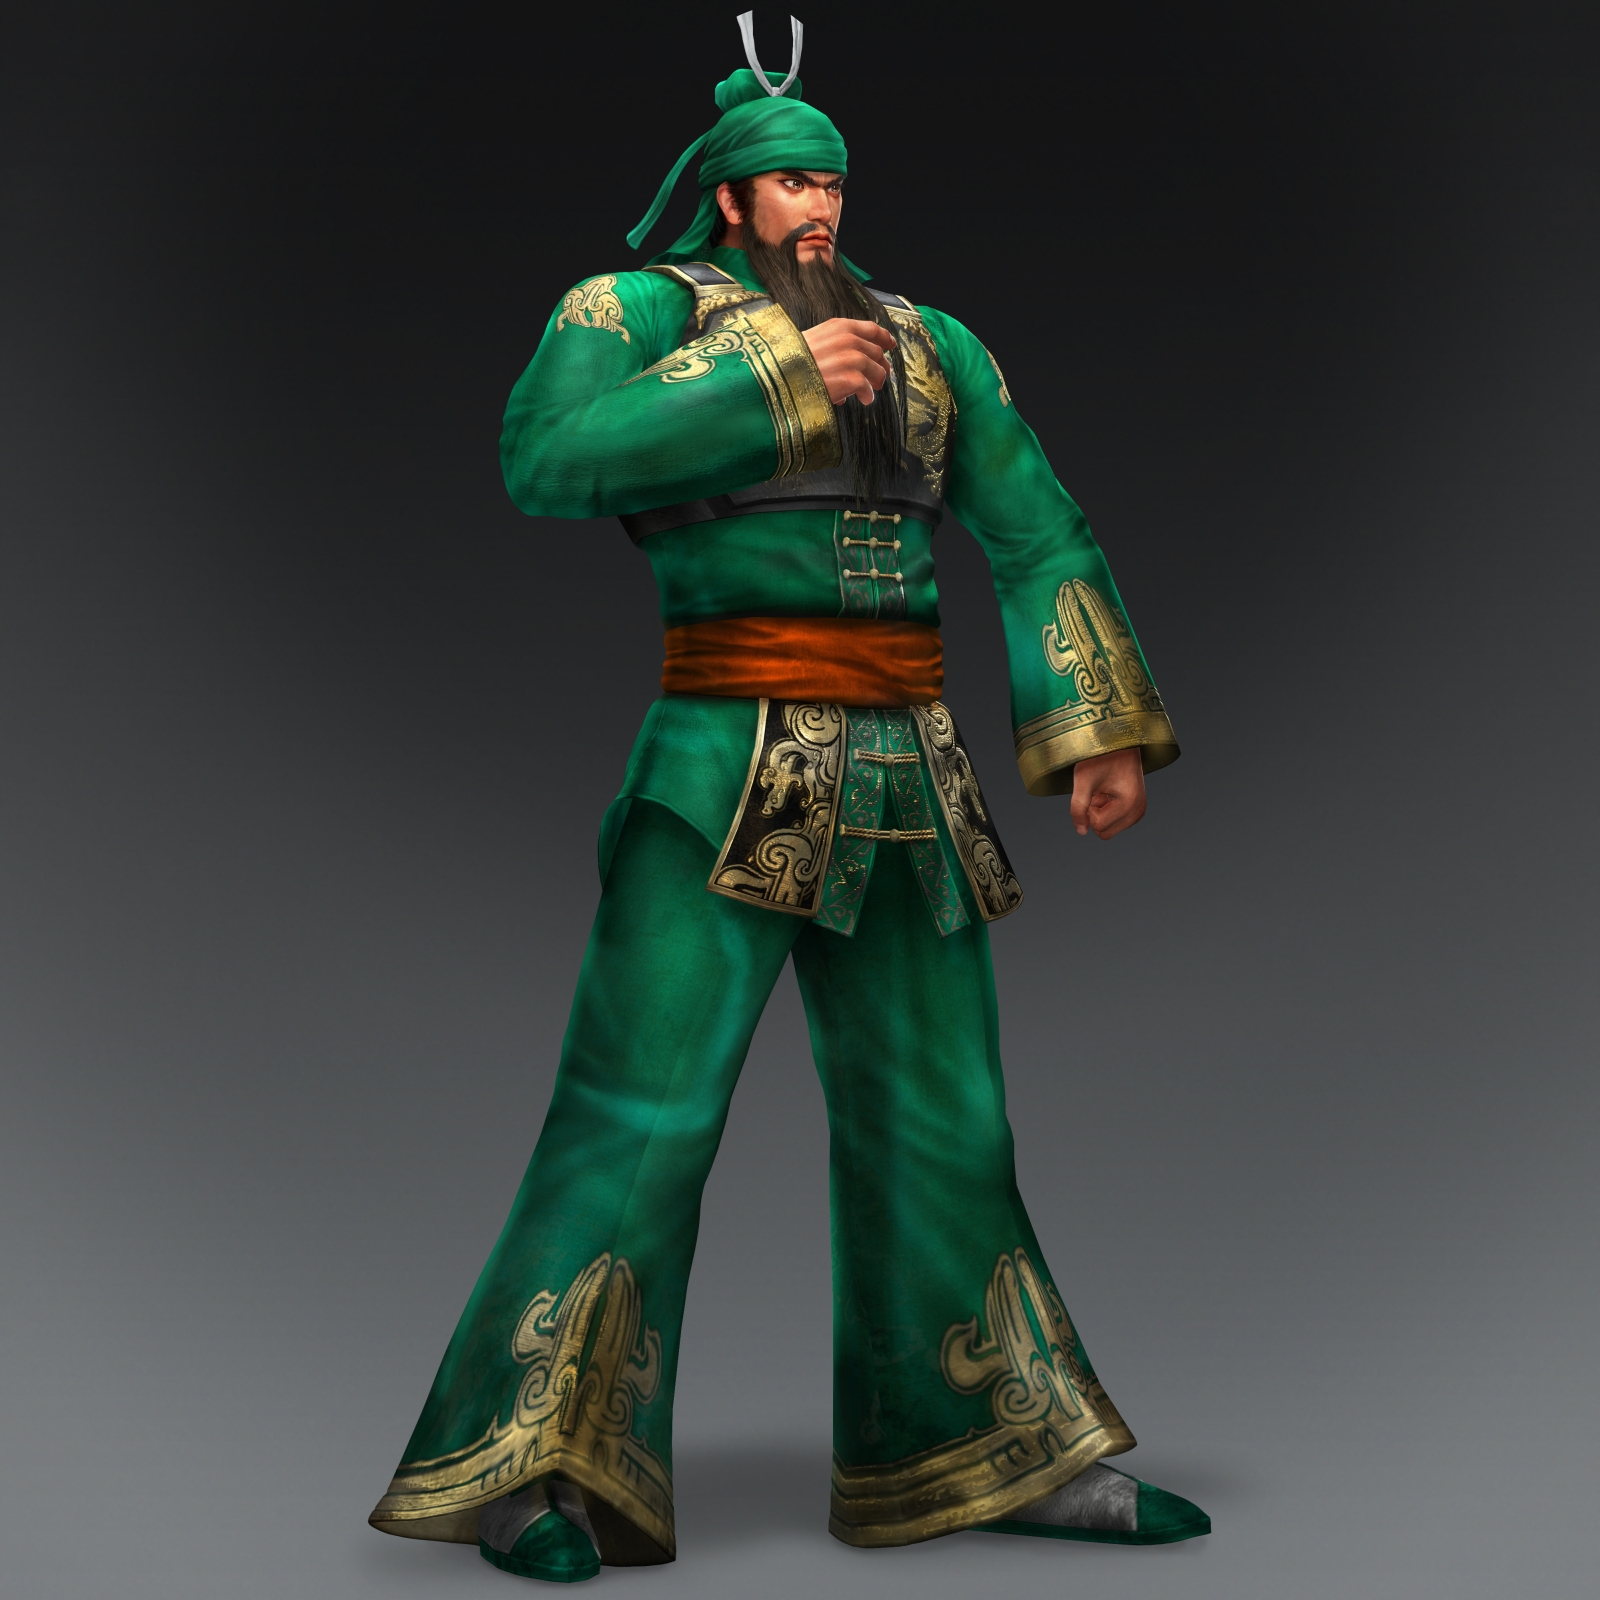 Warriors Orochi 3 Ultimate Weapons Big Star: Image - Guan Yu DW1 Costume (DW8 DLC).jpg